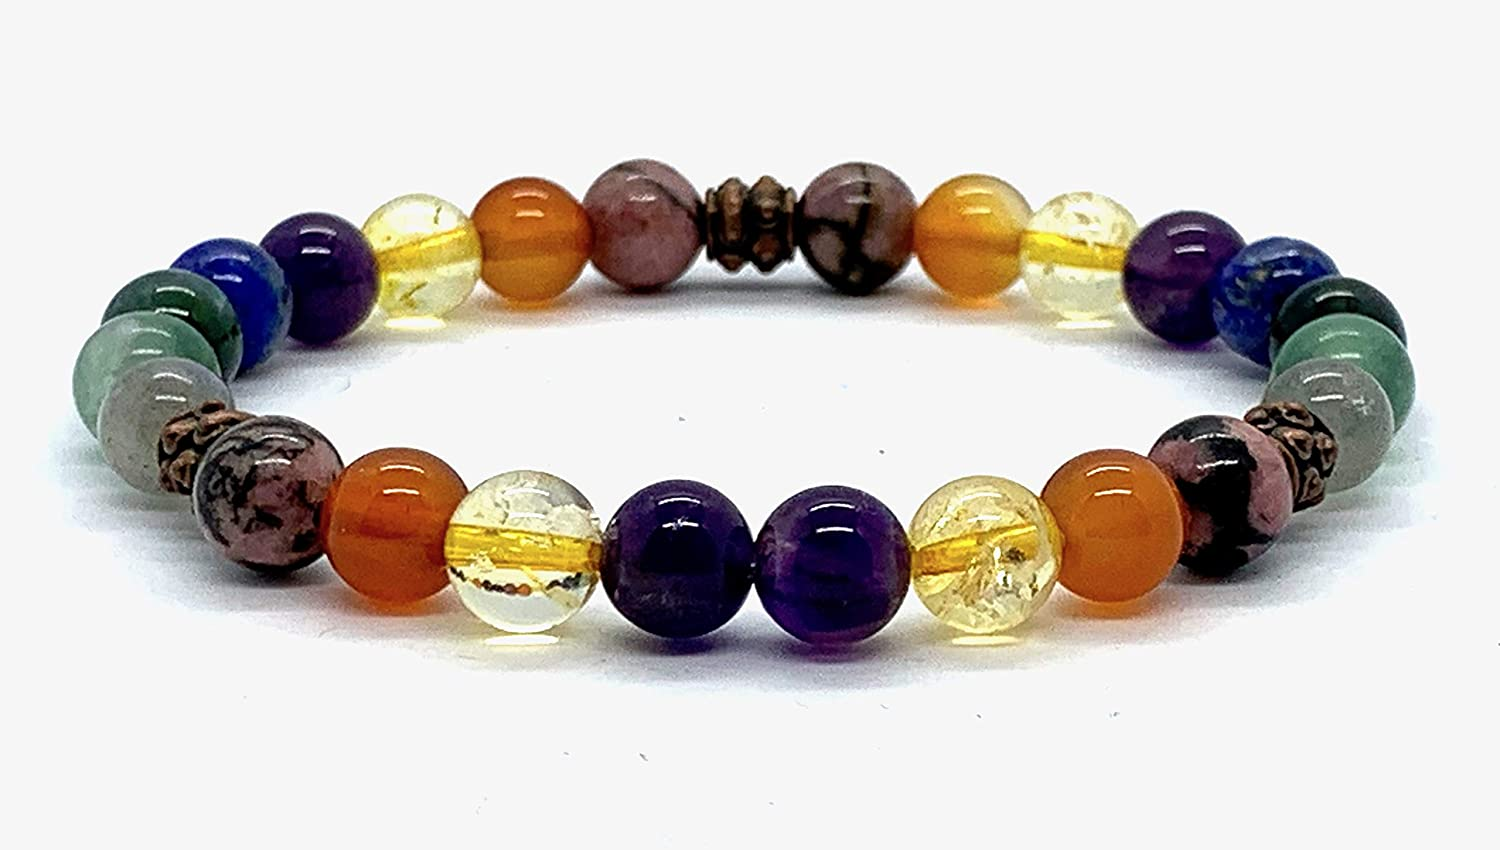 "Carnelian Tourmaline Lapis citrine Crystals for Immunity Copper Healing Bracelet Immune Booster EMF radiations Protection Buddhist Wrist mala Beads Meditation - 7.5"" Inch Stretch wrist Bracelet"